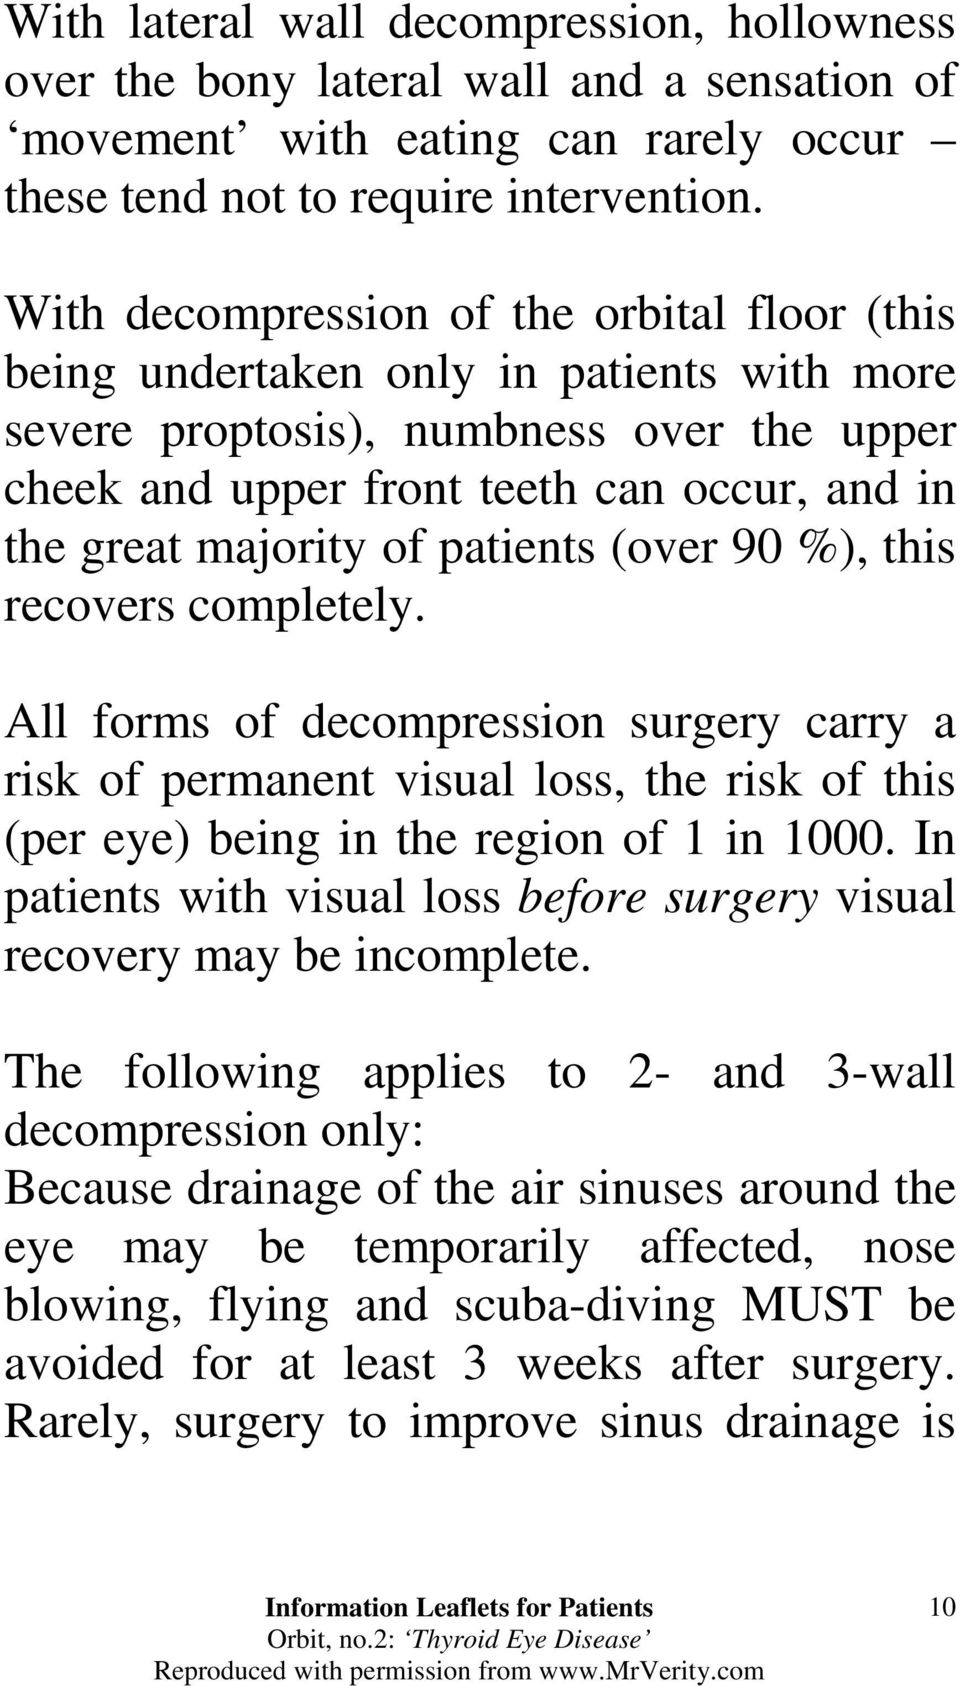 of patients (over 90 %), this recovers completely. All forms of decompression surgery carry a risk of permanent visual loss, the risk of this (per eye) being in the region of 1 in 1000.